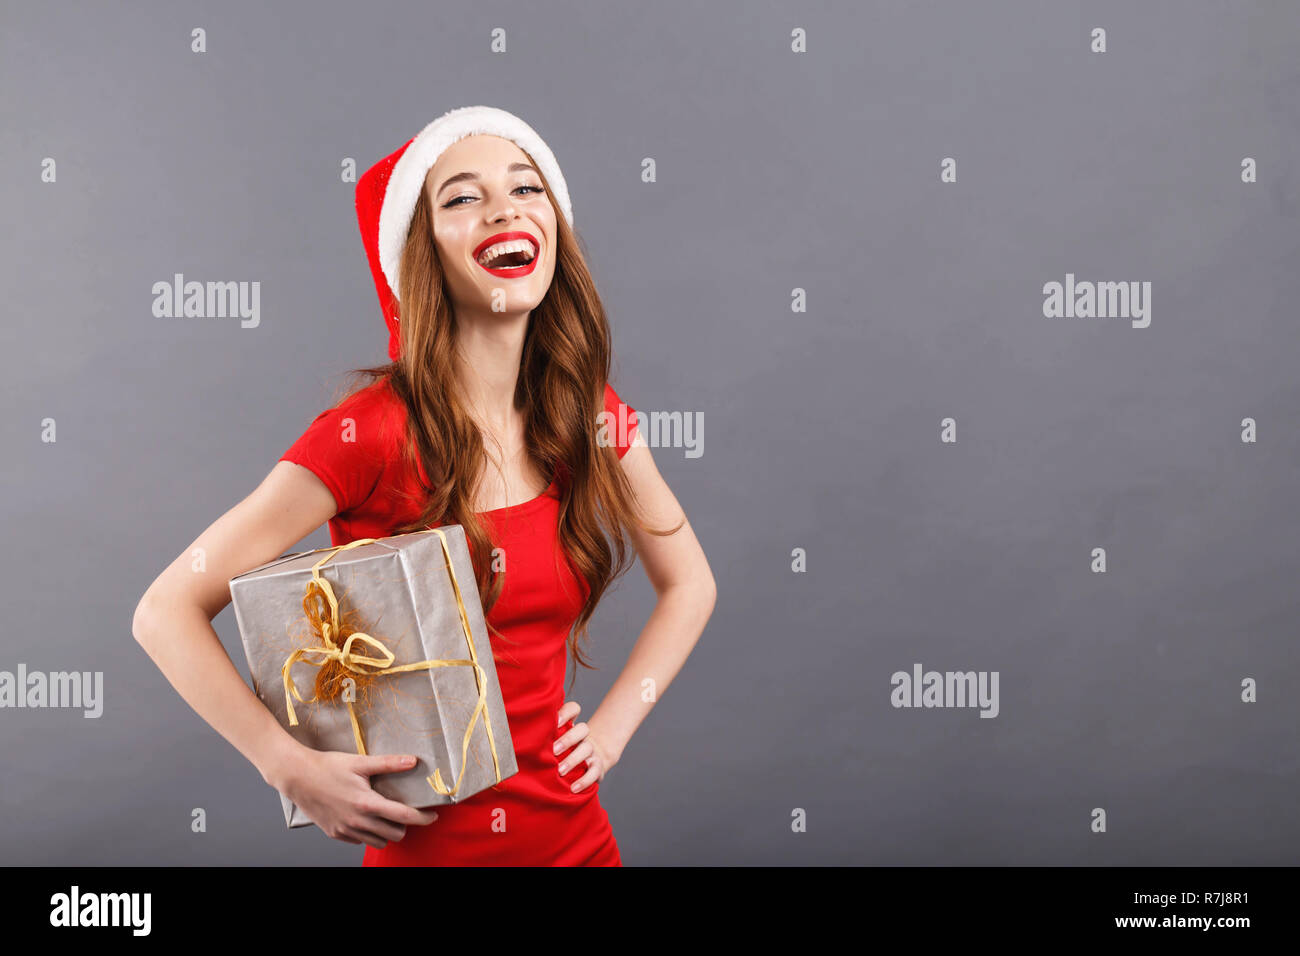 79e125f85c1cc Beautiful christmas woman wearing Santa hat and red dress laughing and  holding a present